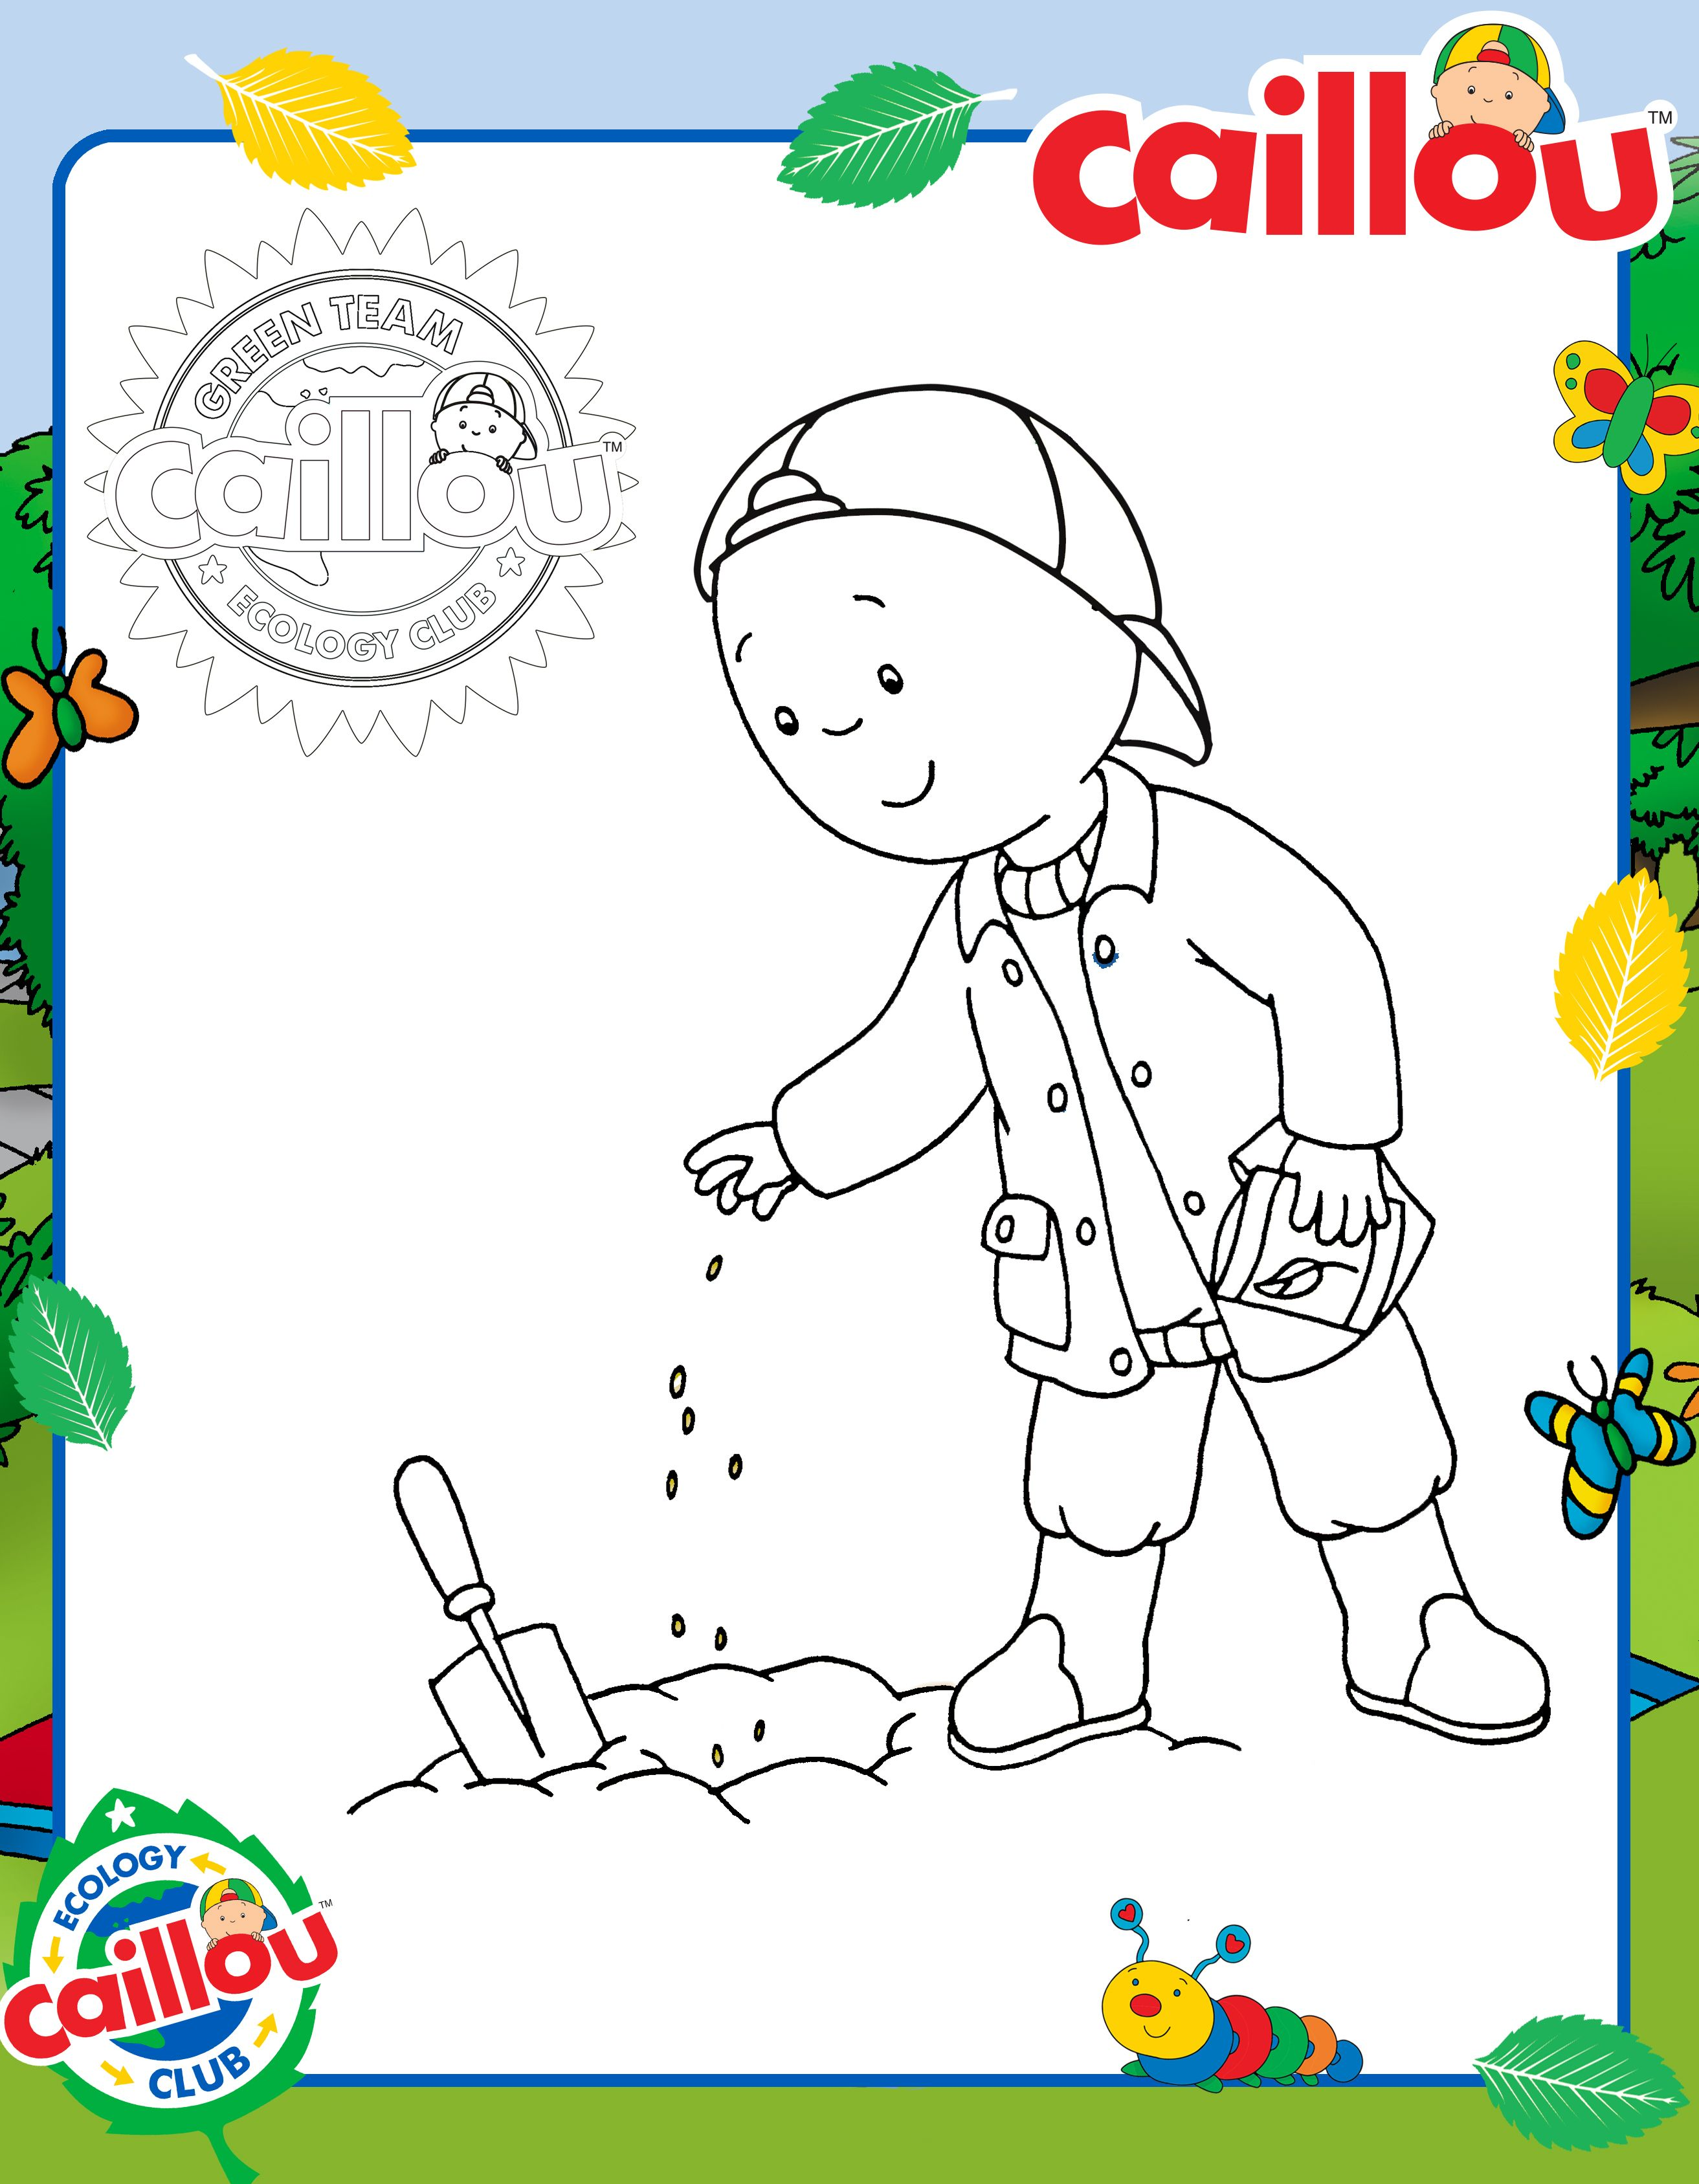 Caillou Plants a Tree Coloring Sheet! #EarthDay | Earth Month ...